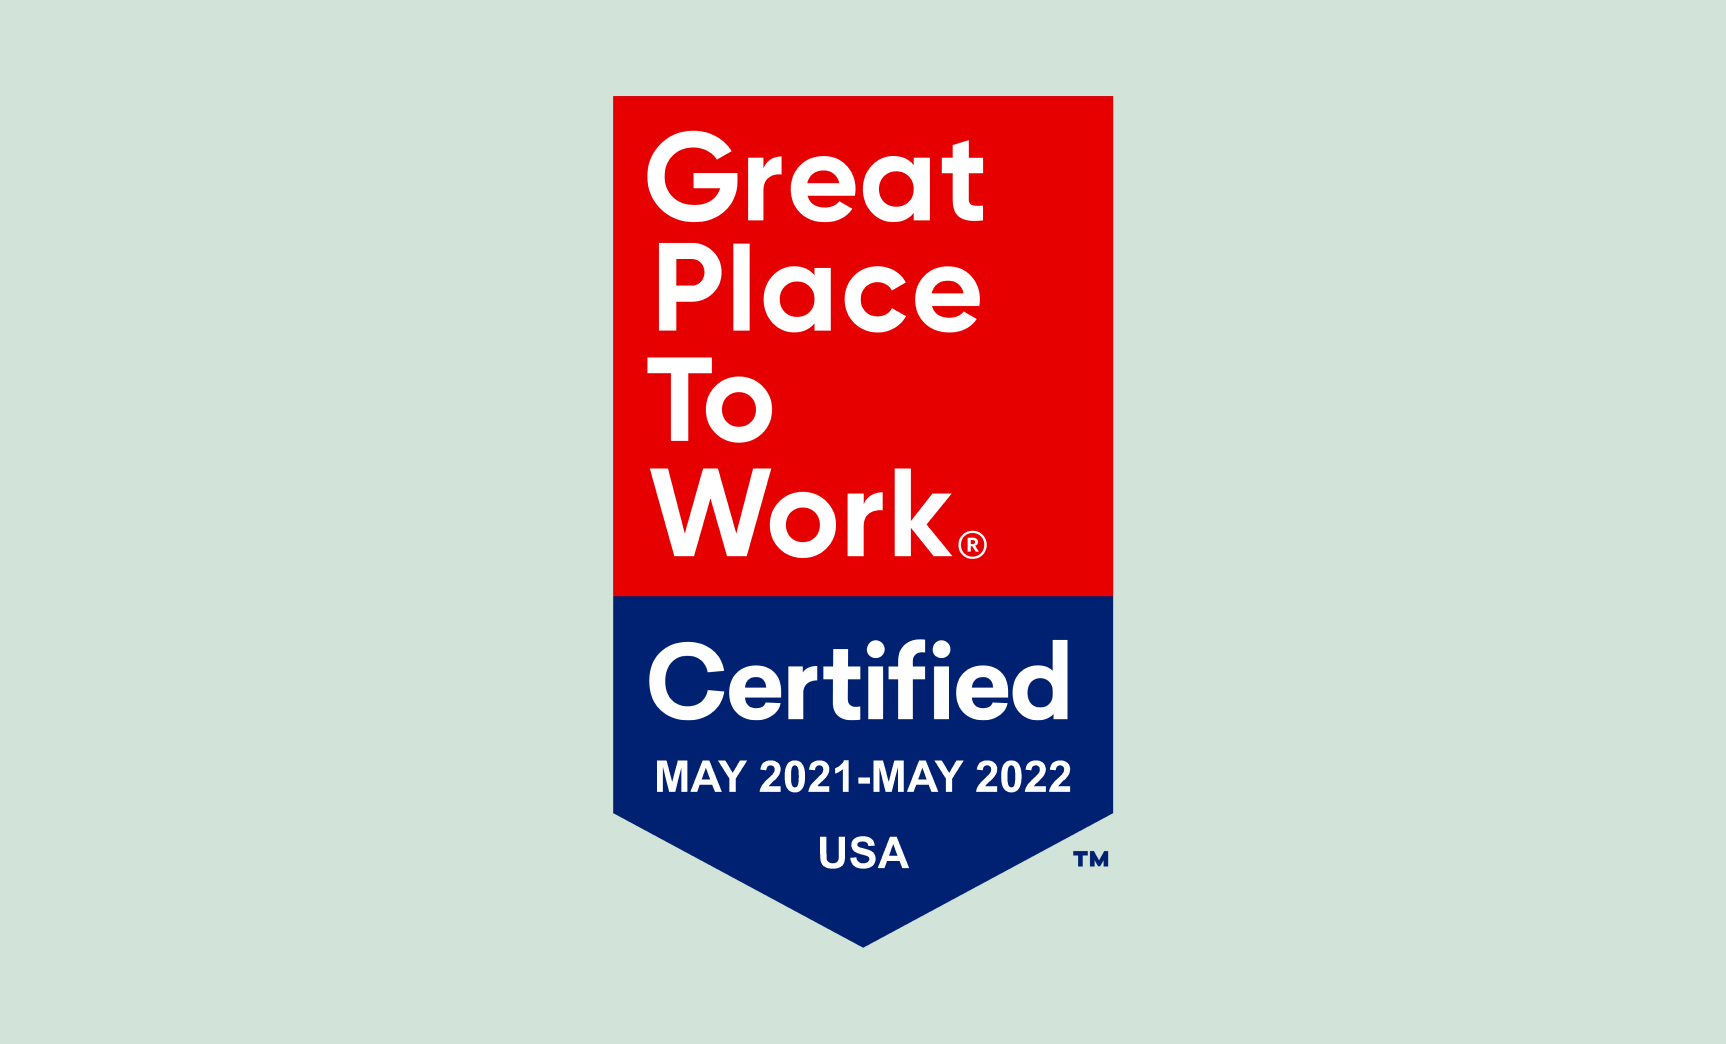 Carrot named a Great Place to Work